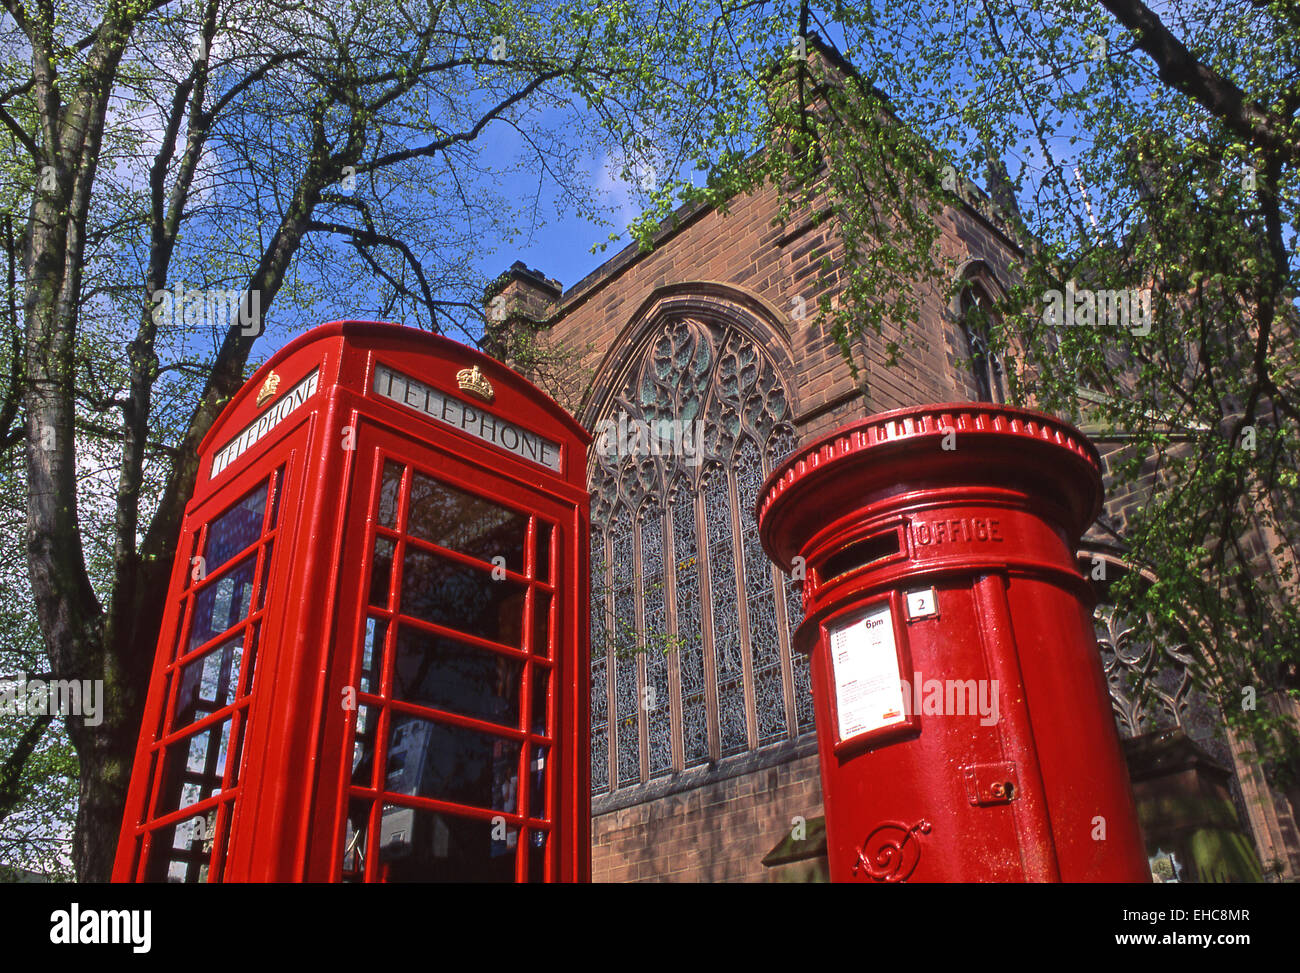 Traditional Red Telephone and Postal Boxes, Chester, Cheshire, England, UK - Stock Image